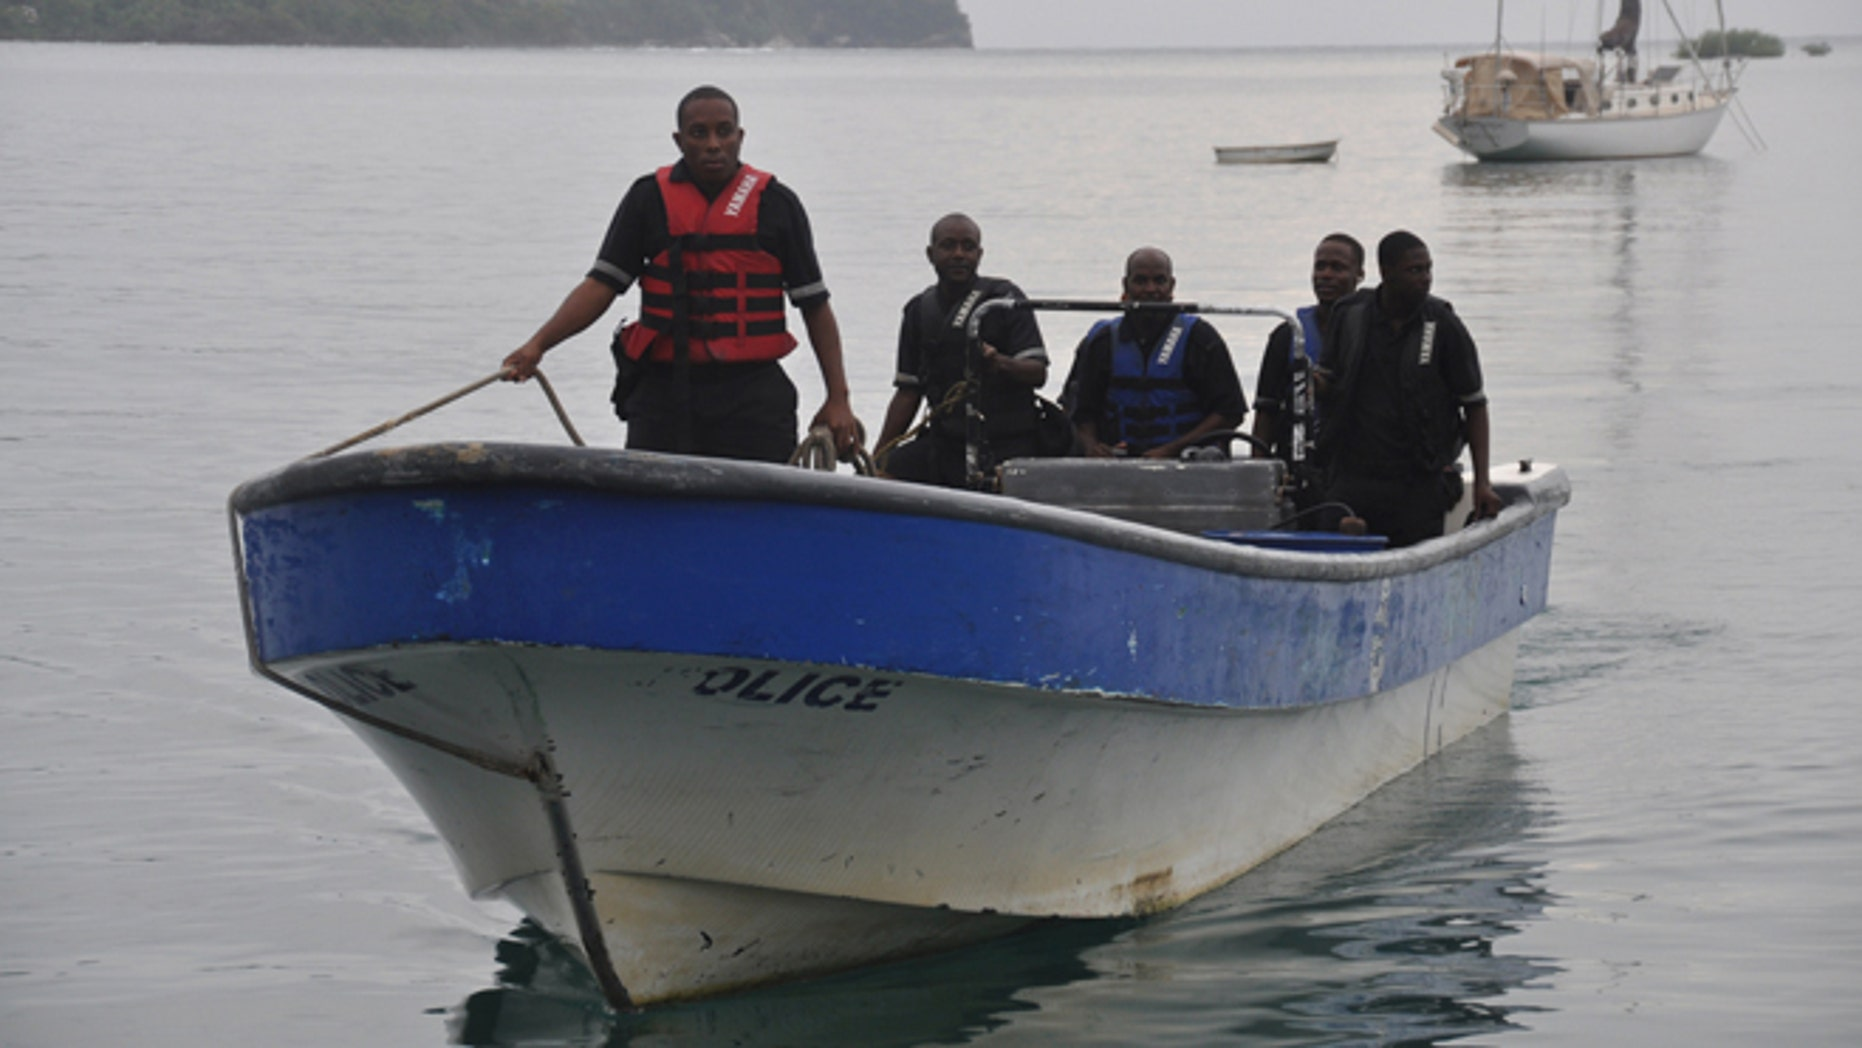 Jamaican Marine Police return to the Port Antonio Marina after a fruitless search for a plane that crashed into the ocean near Port Antonio, Jamaica, Friday, Sept. 5, 2014. A small plane flew down the Atlantic Coast and beyond Friday before finally crashing in the waters off Jamaica. The fate of the two or more people aboard was not immediately known. Maj. Basil Jarrett of the Jamaican Defense Force said the plane went down northeast of the coastal town of Port Antonio and the military dispatched two aircraft and a dive team. (AP Photo/Everard Owen)